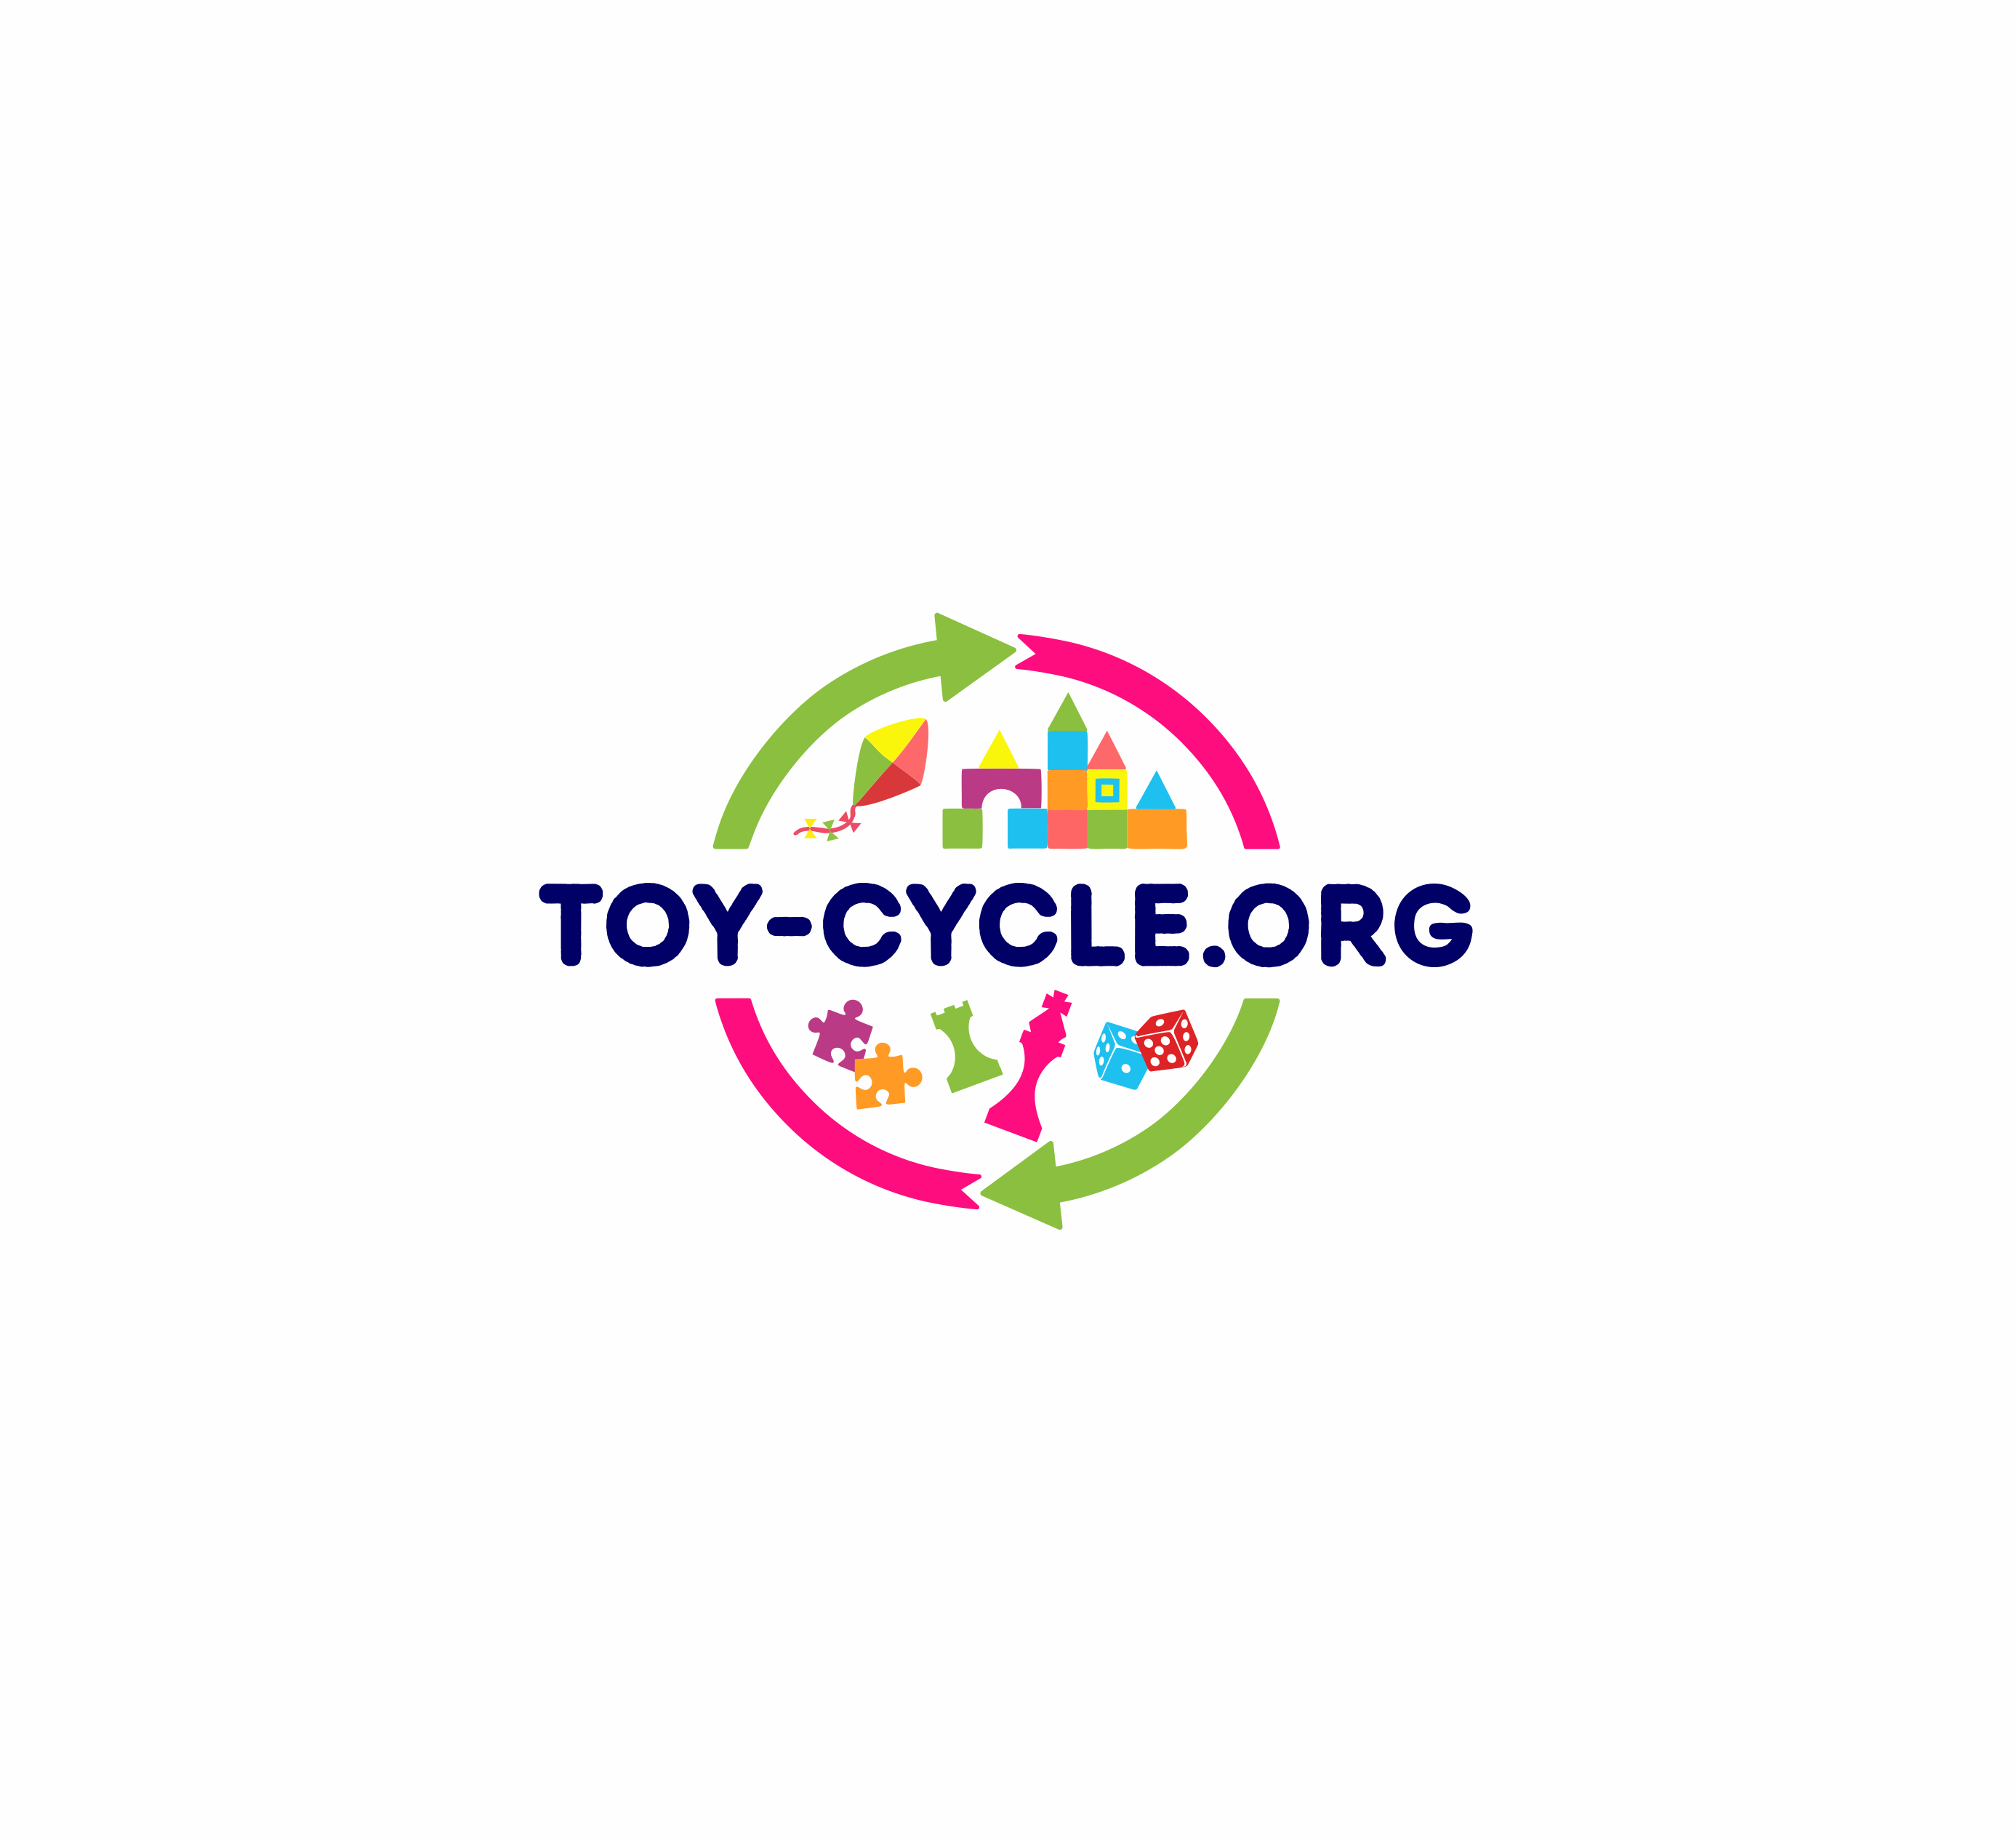 Create a playful design for Toy-cycle, an online toy recycle network